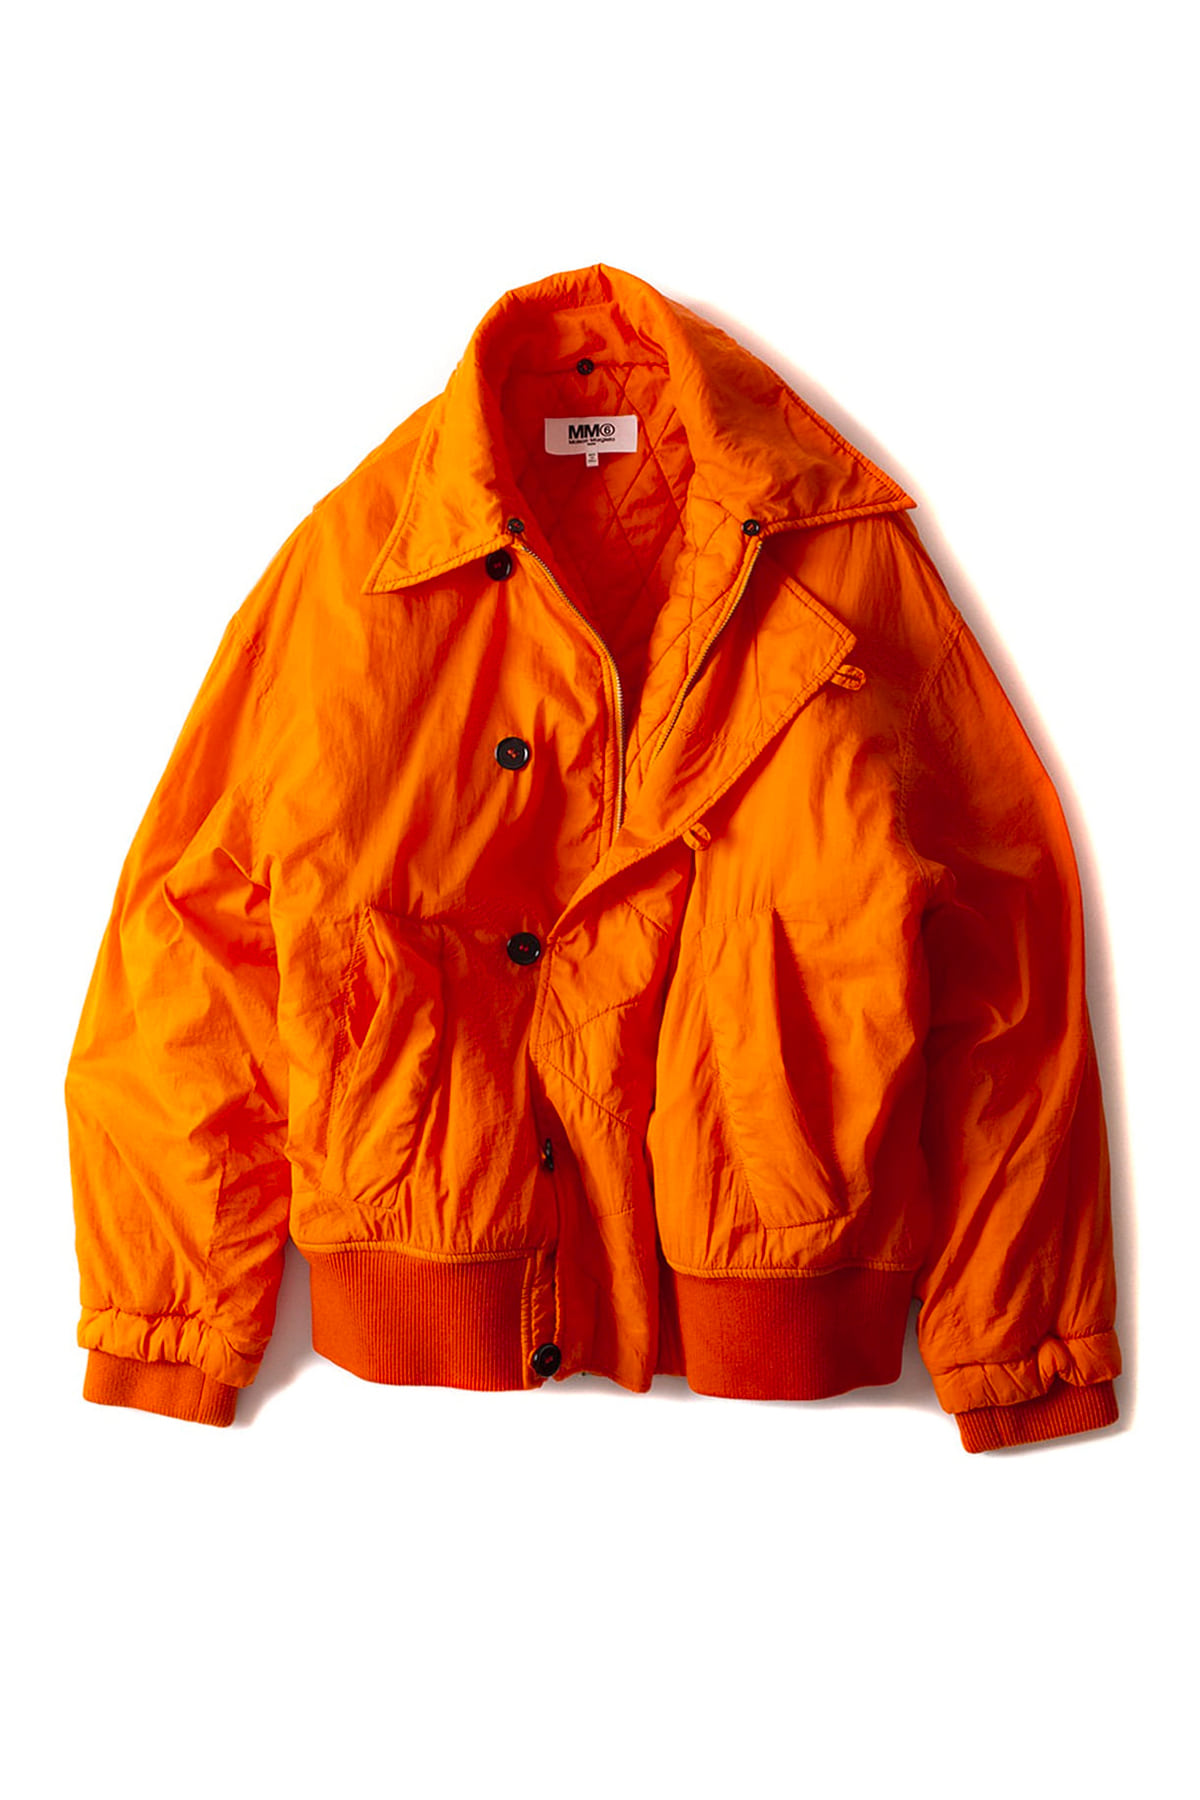 MM6 Maison Margiela : Fur Bomber Jacket (Orange)